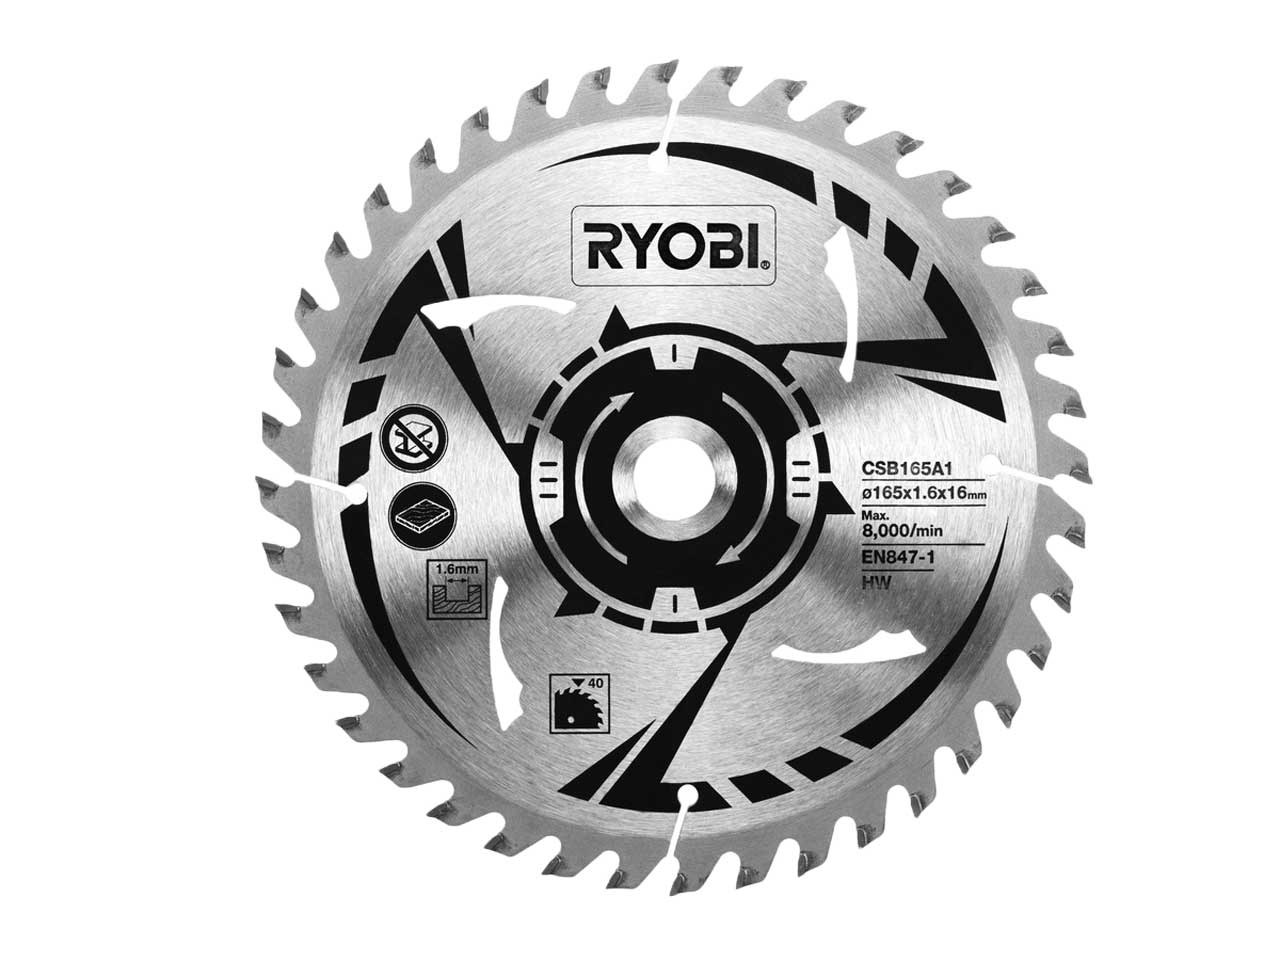 Ryobi csb165a1 165mm circular saw blade keyboard keysfo Image collections